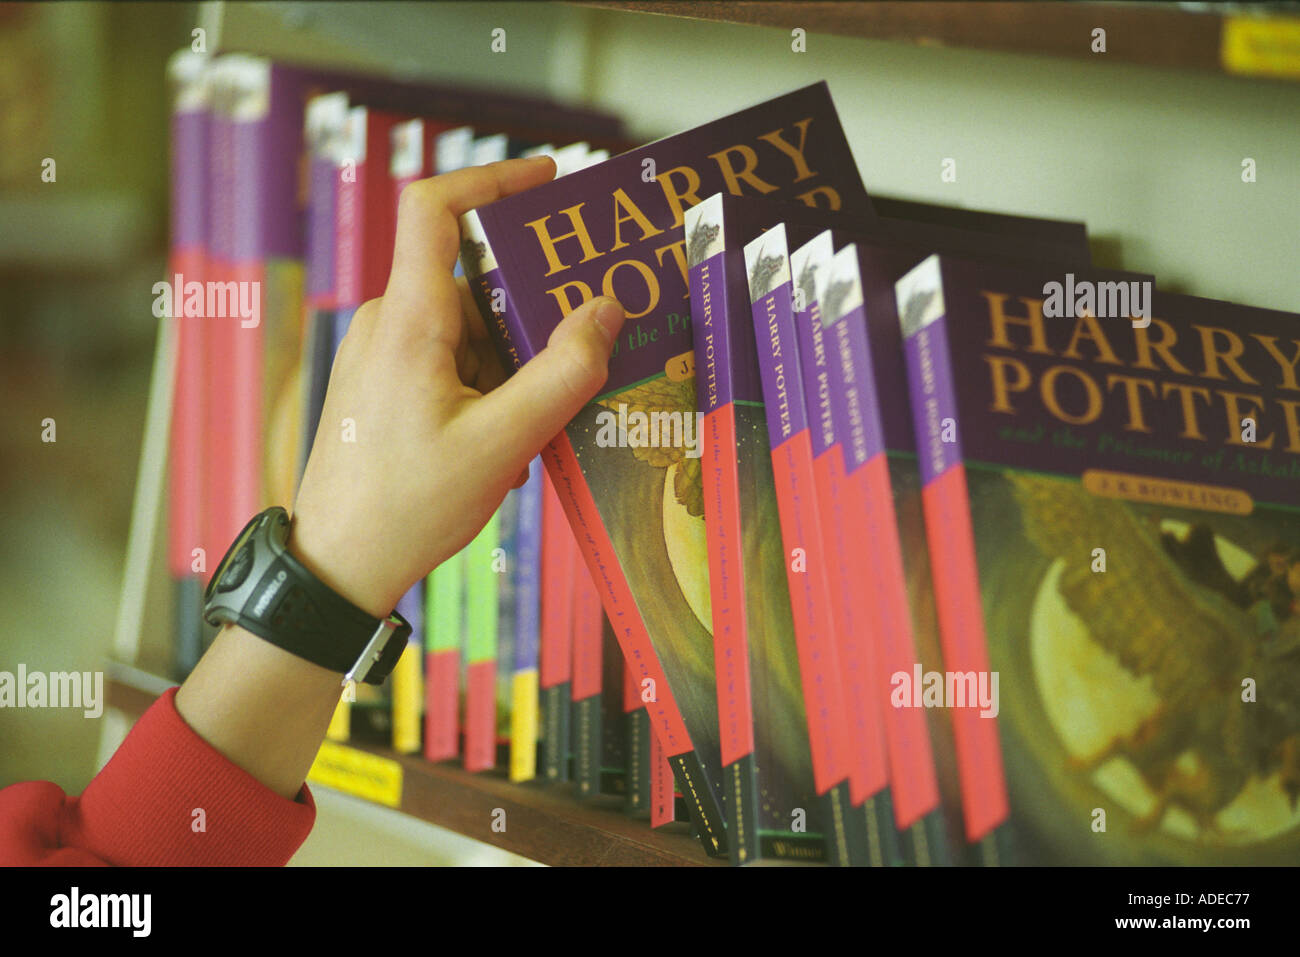 Harry Potter Books Young Readers : Harry potter books and children stock photos